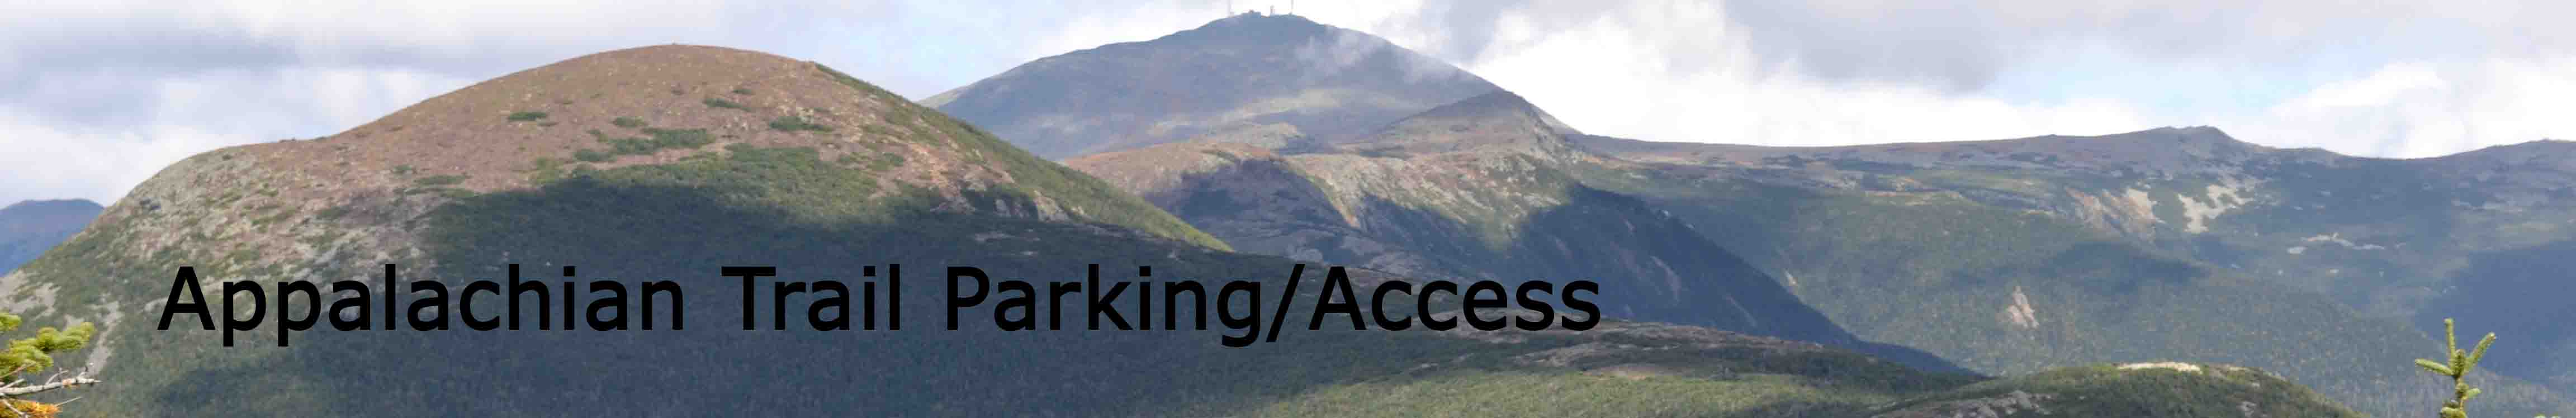 Appalachian Trail Parking Database